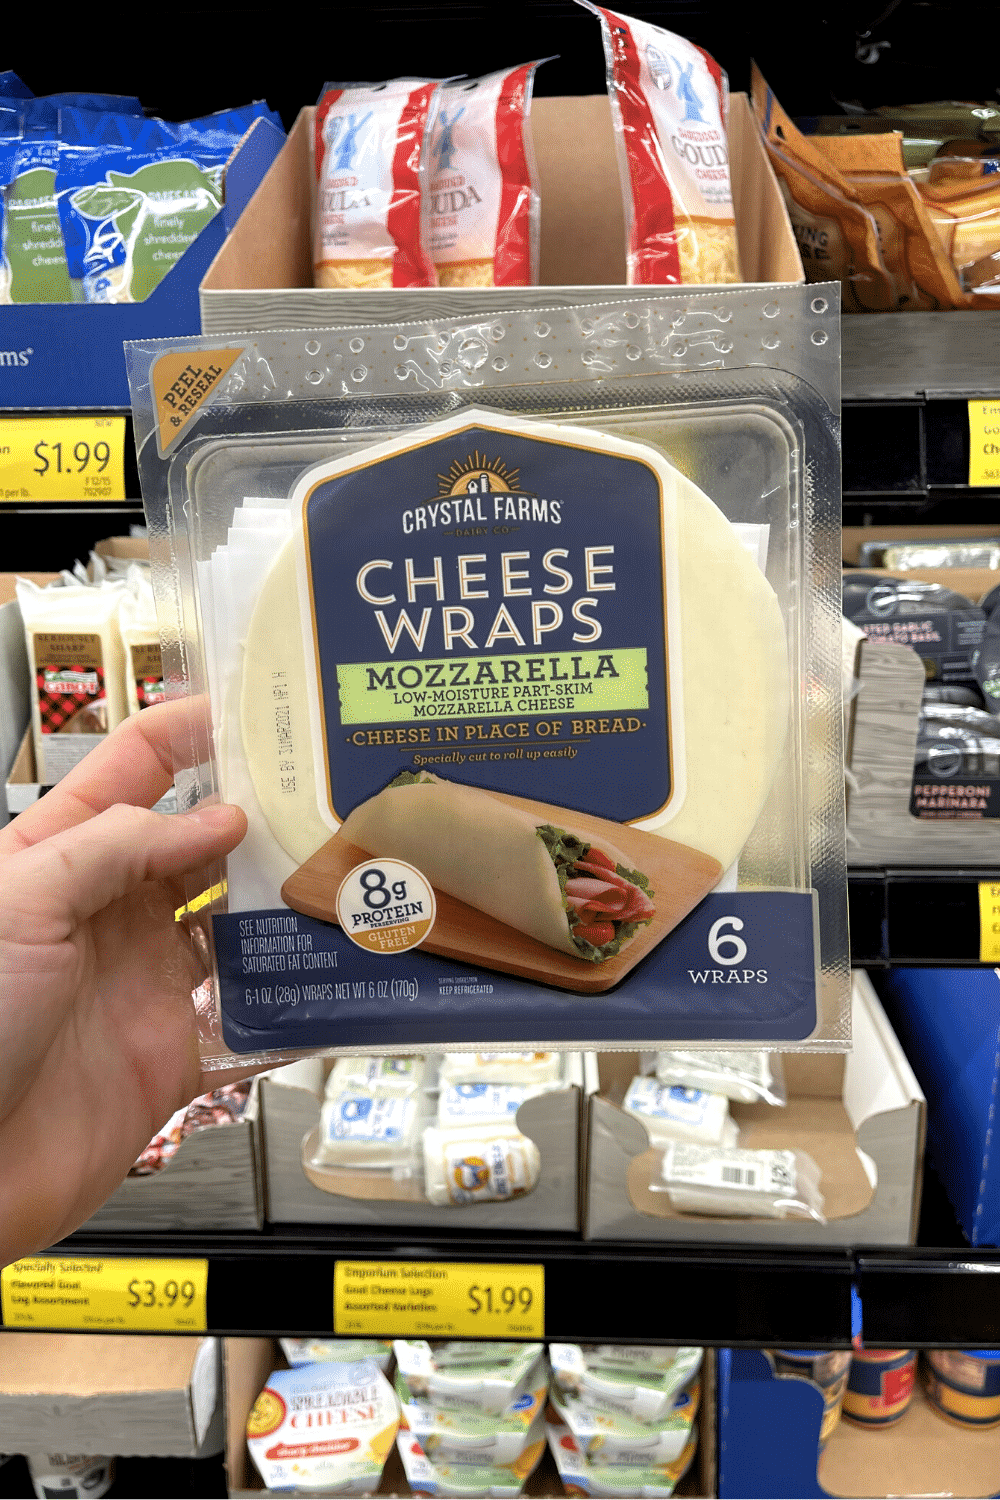 A hand holding a package of mozzarella cheese wraps.